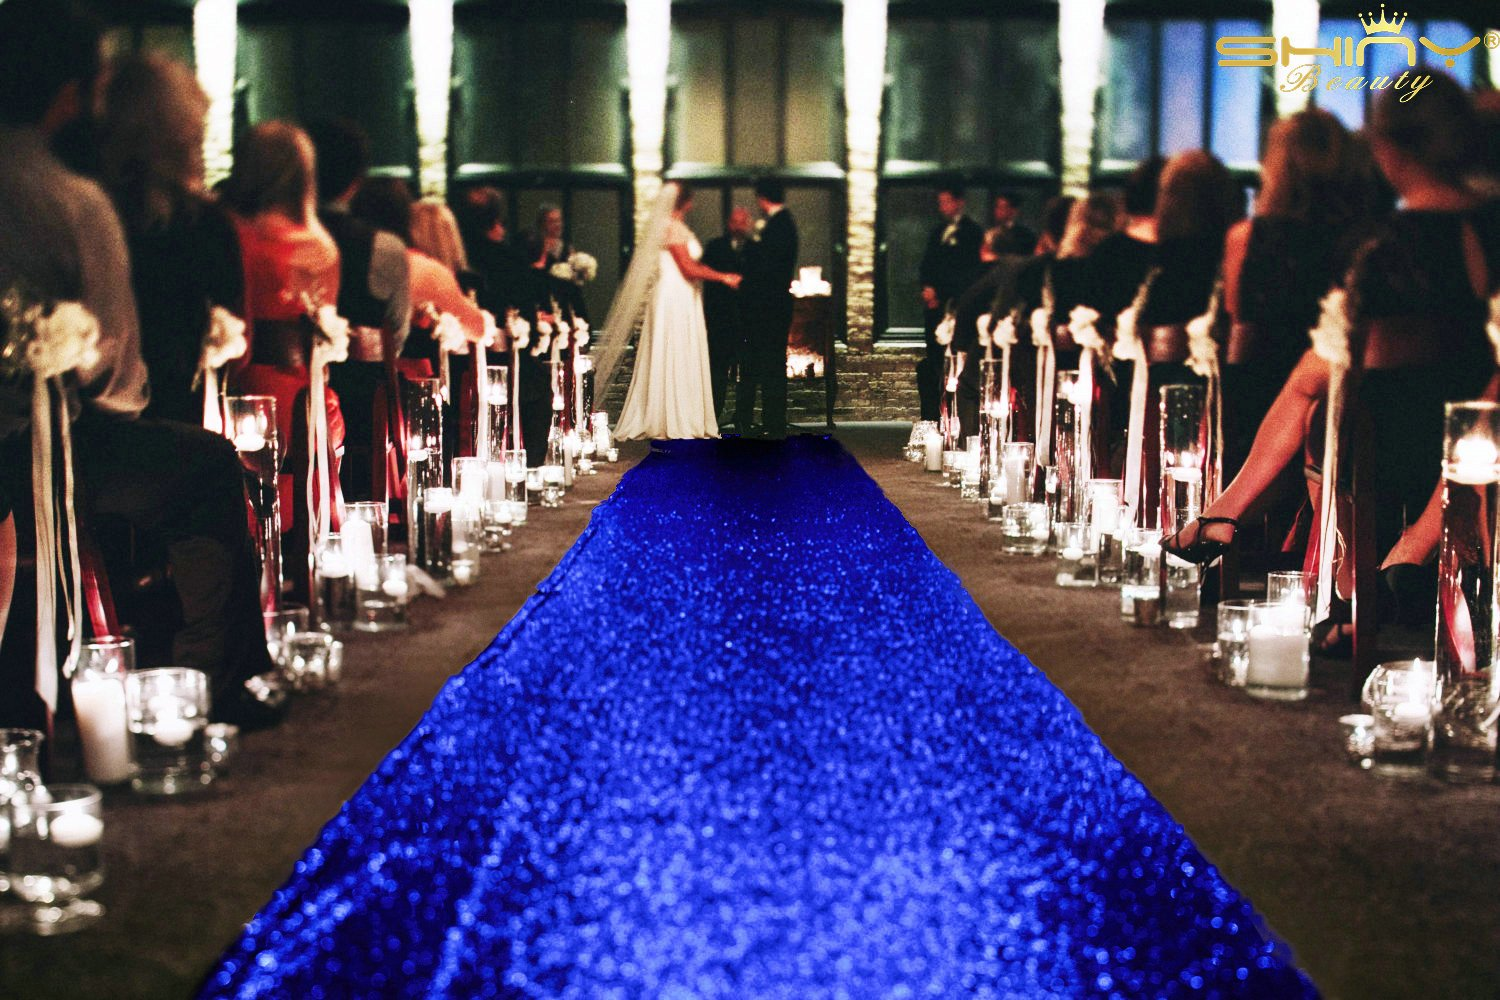 ShinyBeauty Wedding Aisle Runner For Outdoors-40FTX4FT,PERSONALIZED Aisle Runner Wedding Ceremony Decoration-RoyalBlue by ShinyBeauty